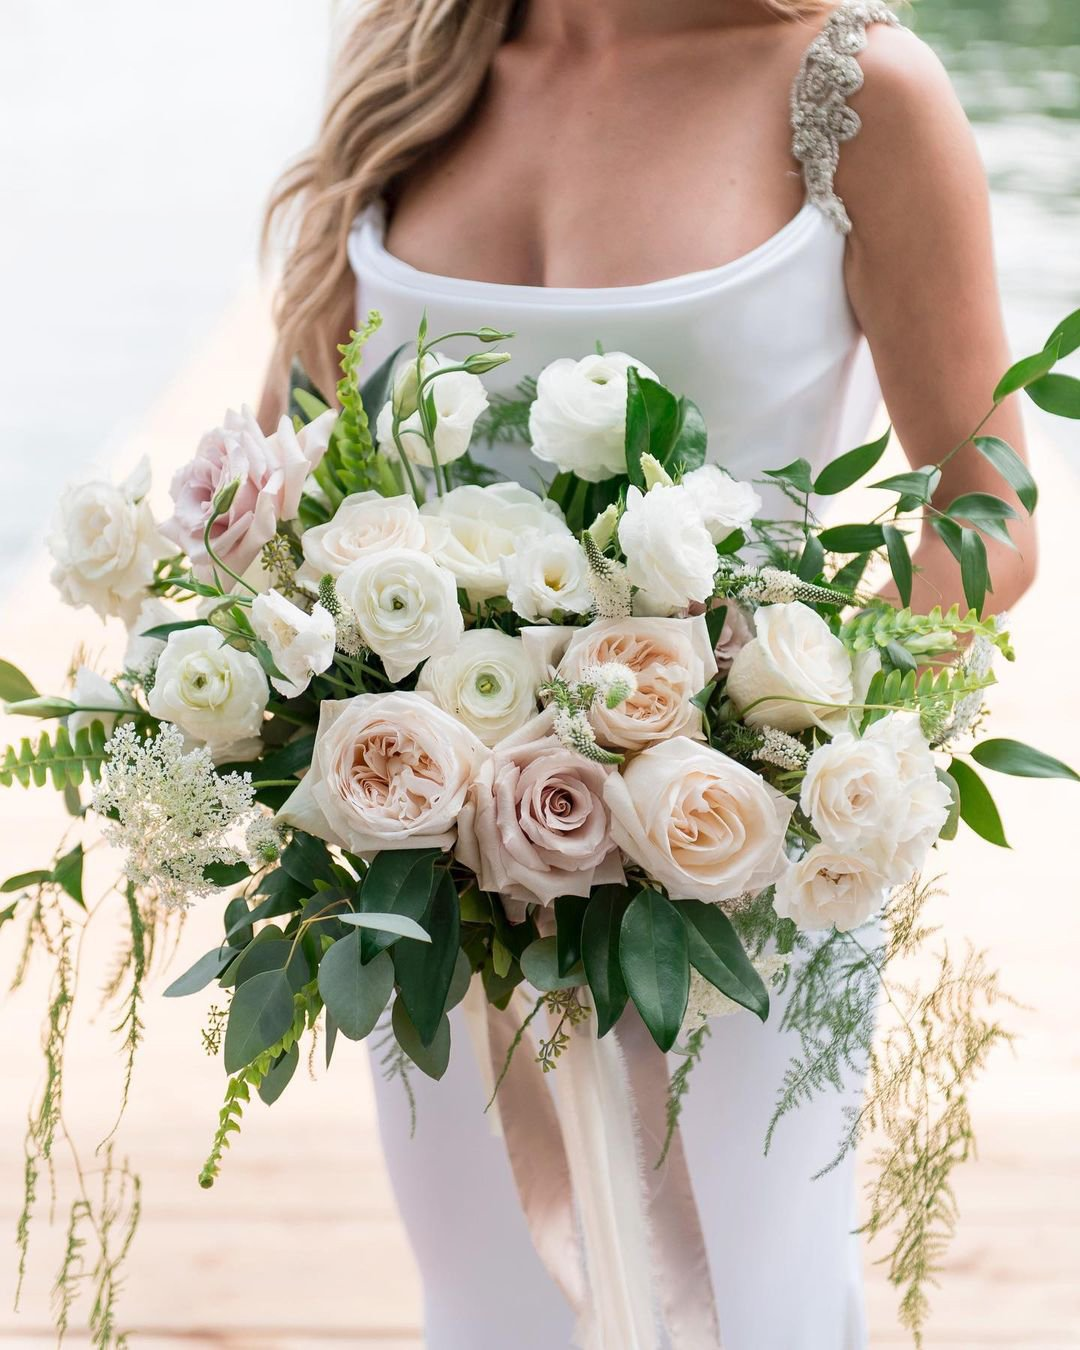 nude wedding photos rose greenery bouquet rachelaclingen